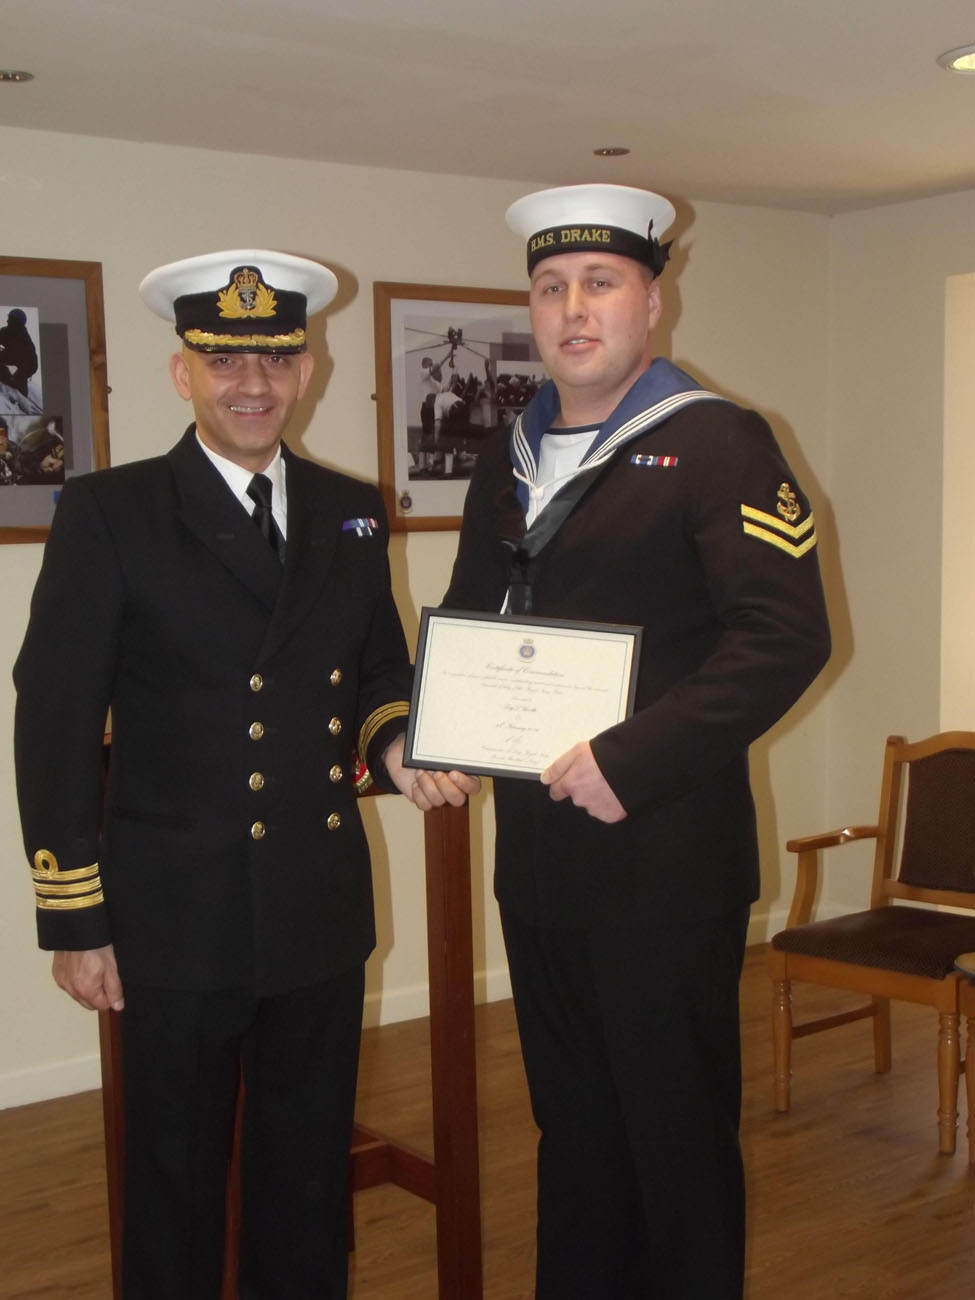 Navy Page 2 >> Royal Navy Police Officer excellence award | Royal Navy